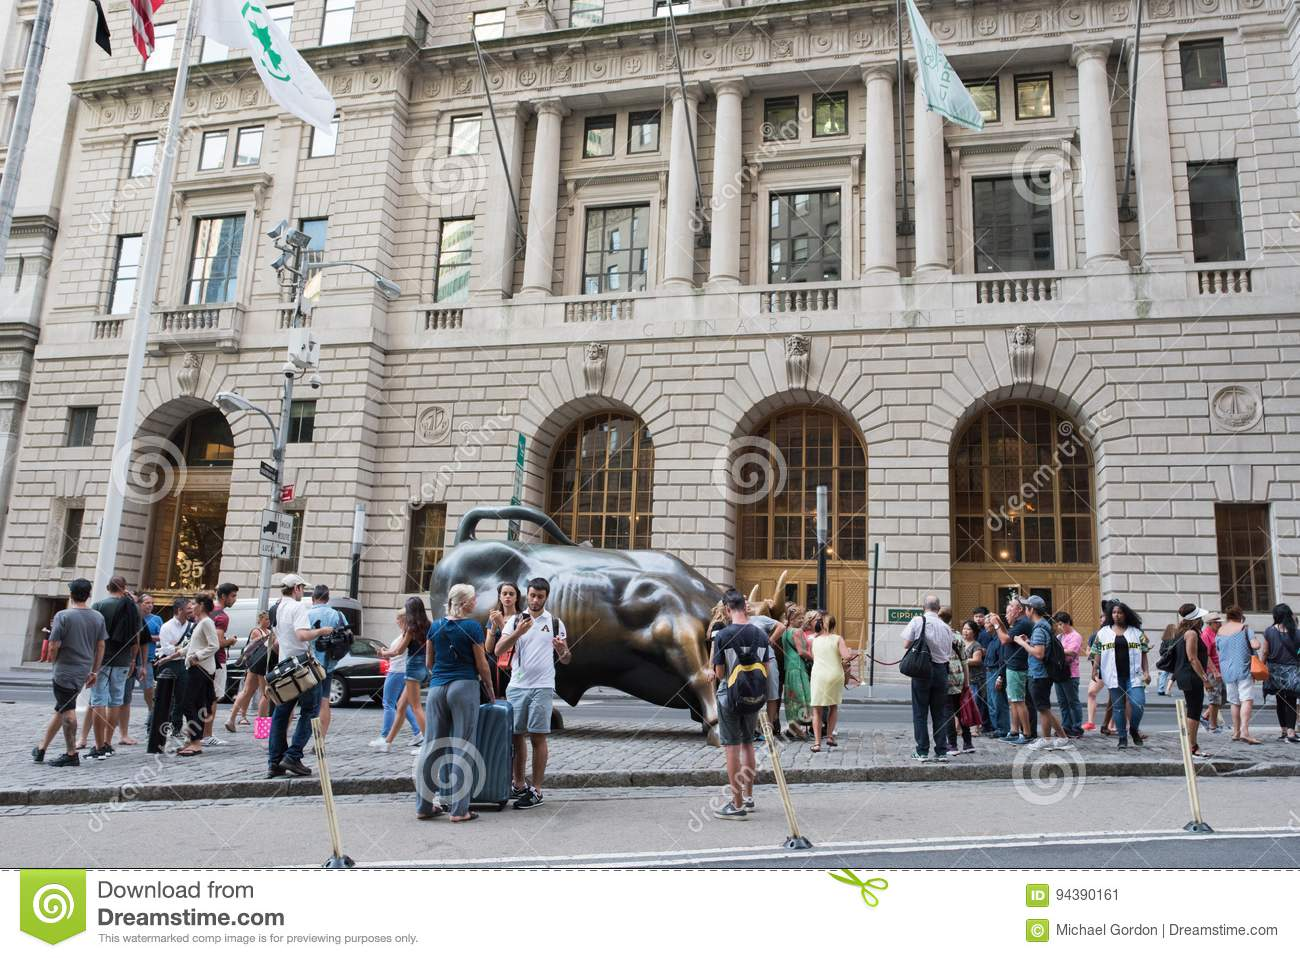 08103566 New York, NY: August 27, 2016: Tourists with `Charging Bull` sculpture.  `Charging Bull` was created as a form of guerilla art by Di Modica who  spent ...